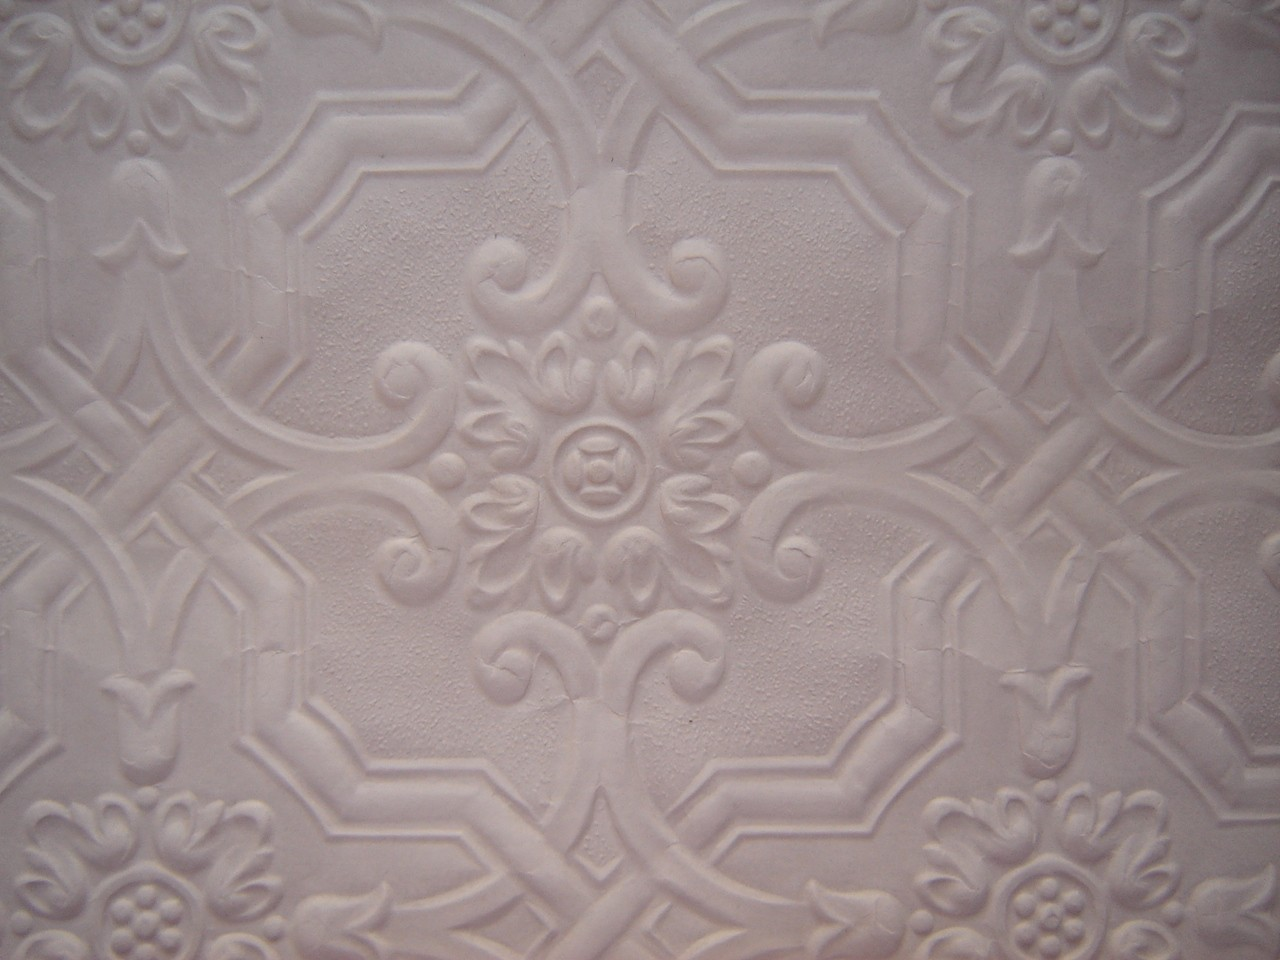 etsycomCeiling Tile Wallpaper Paintable Embossed 1 by 1280x960